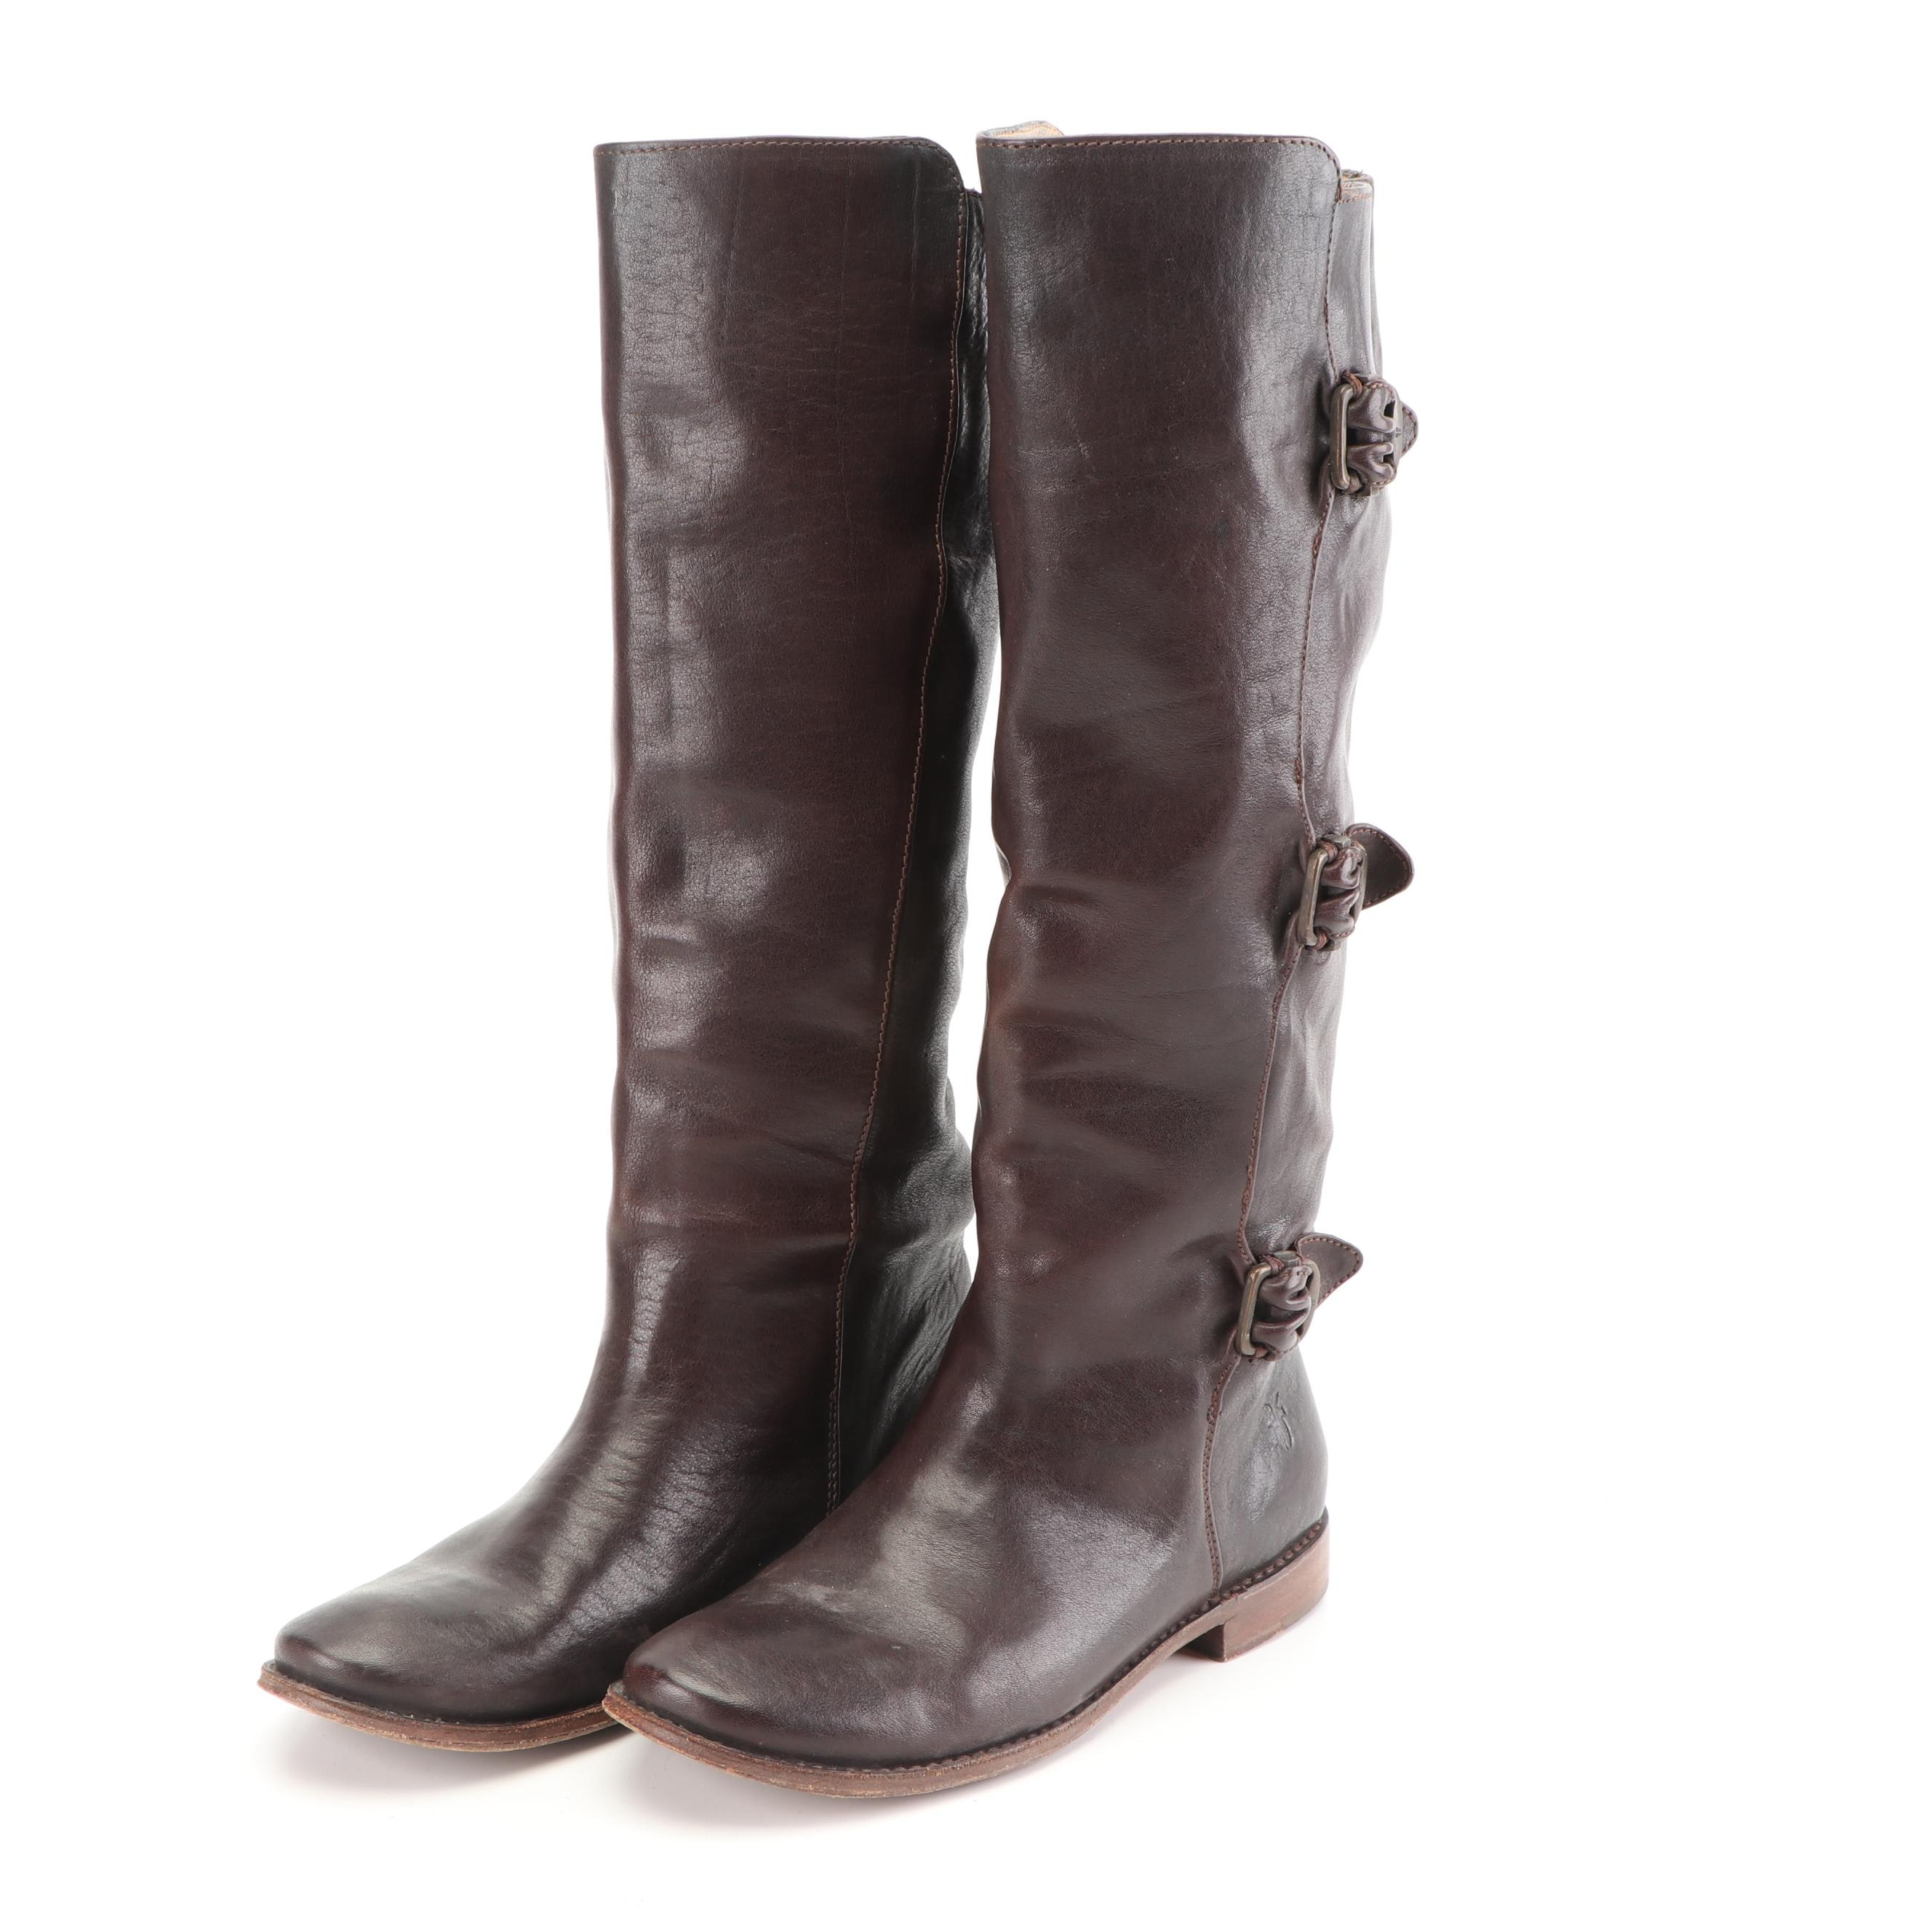 Women's Frye Three Buckle Brown Leather Paige Riding Boots